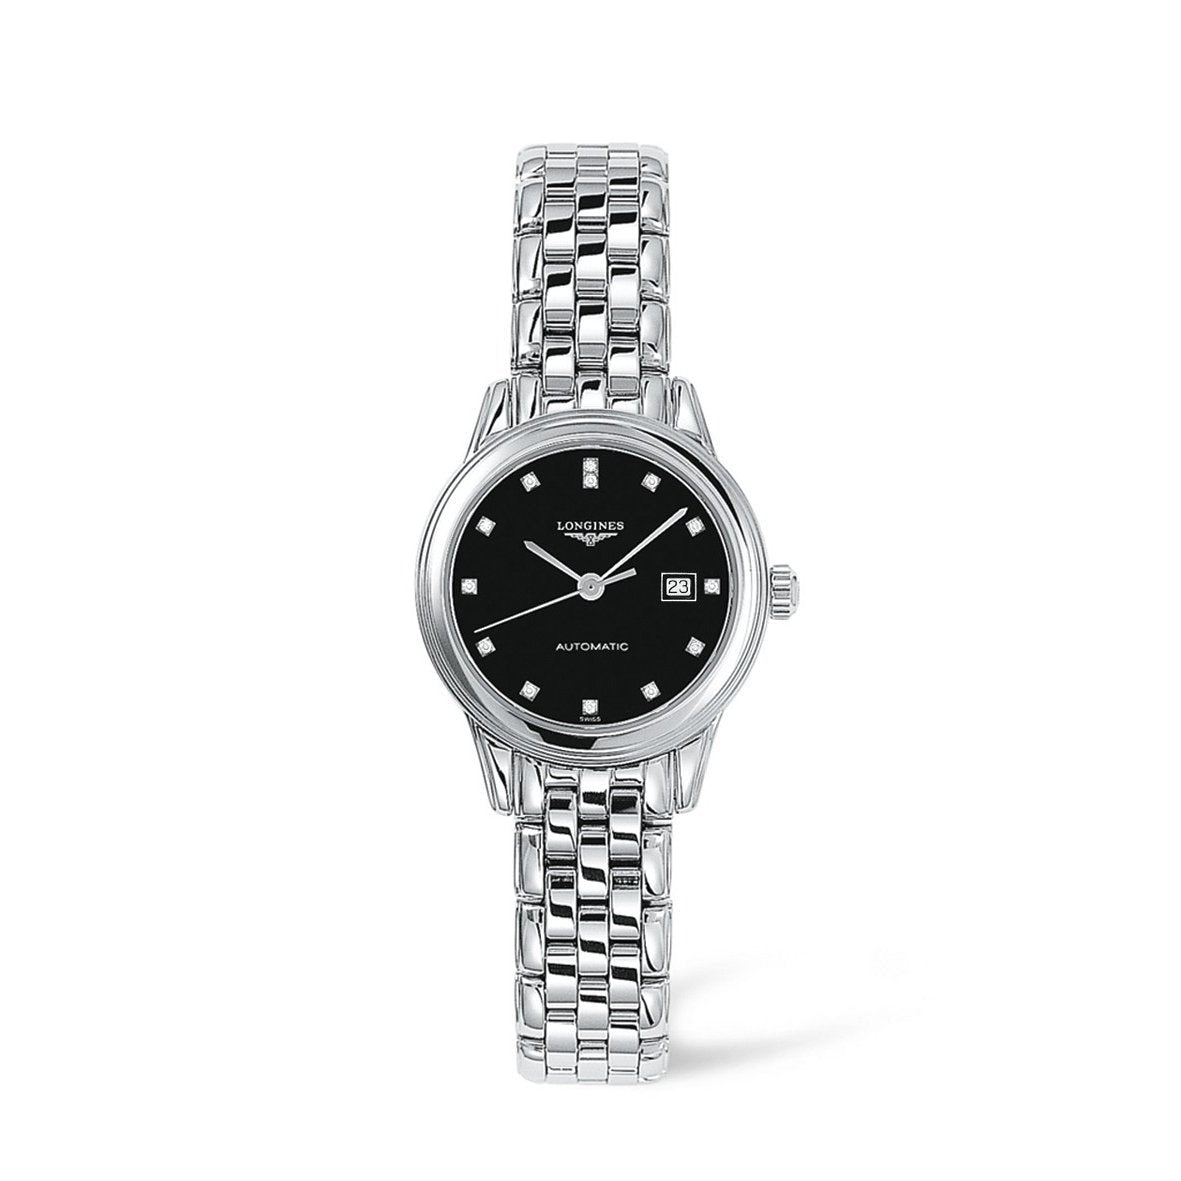 https://www.manfredijewels.com/collections/new-watches/products/flagship-30mm-automatic